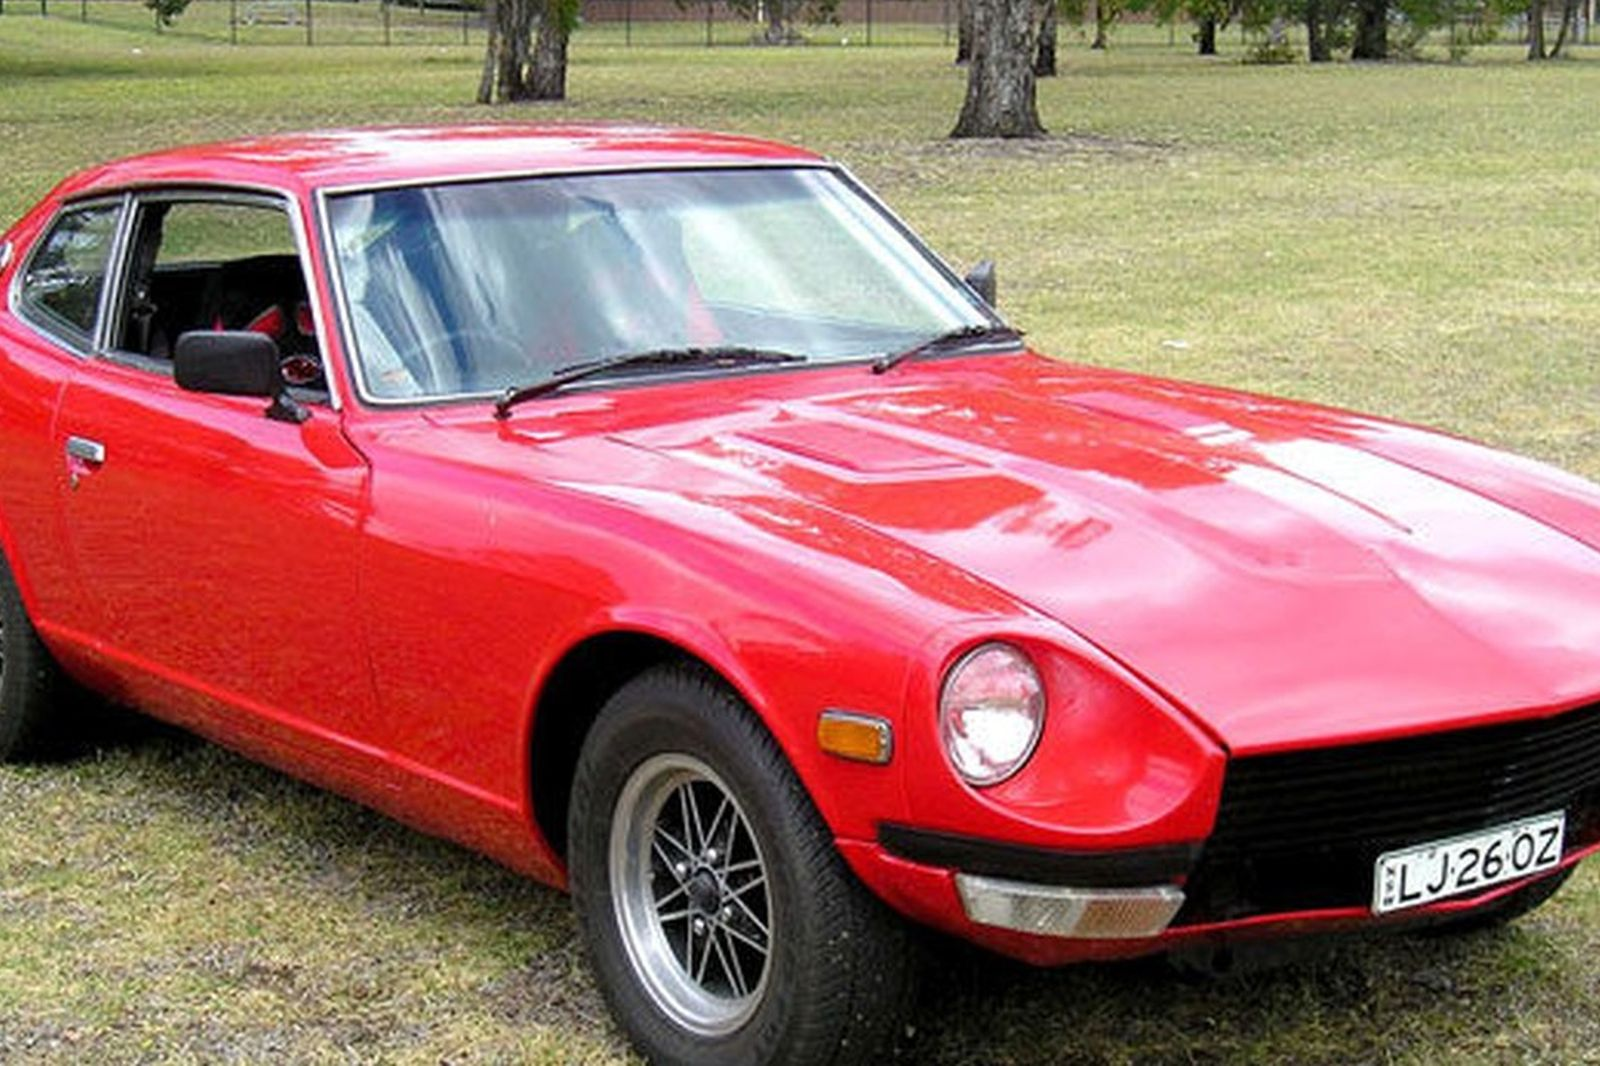 Sold: Datsun 260Z 2+2 Coupe Auctions - Lot 2 - Shannons